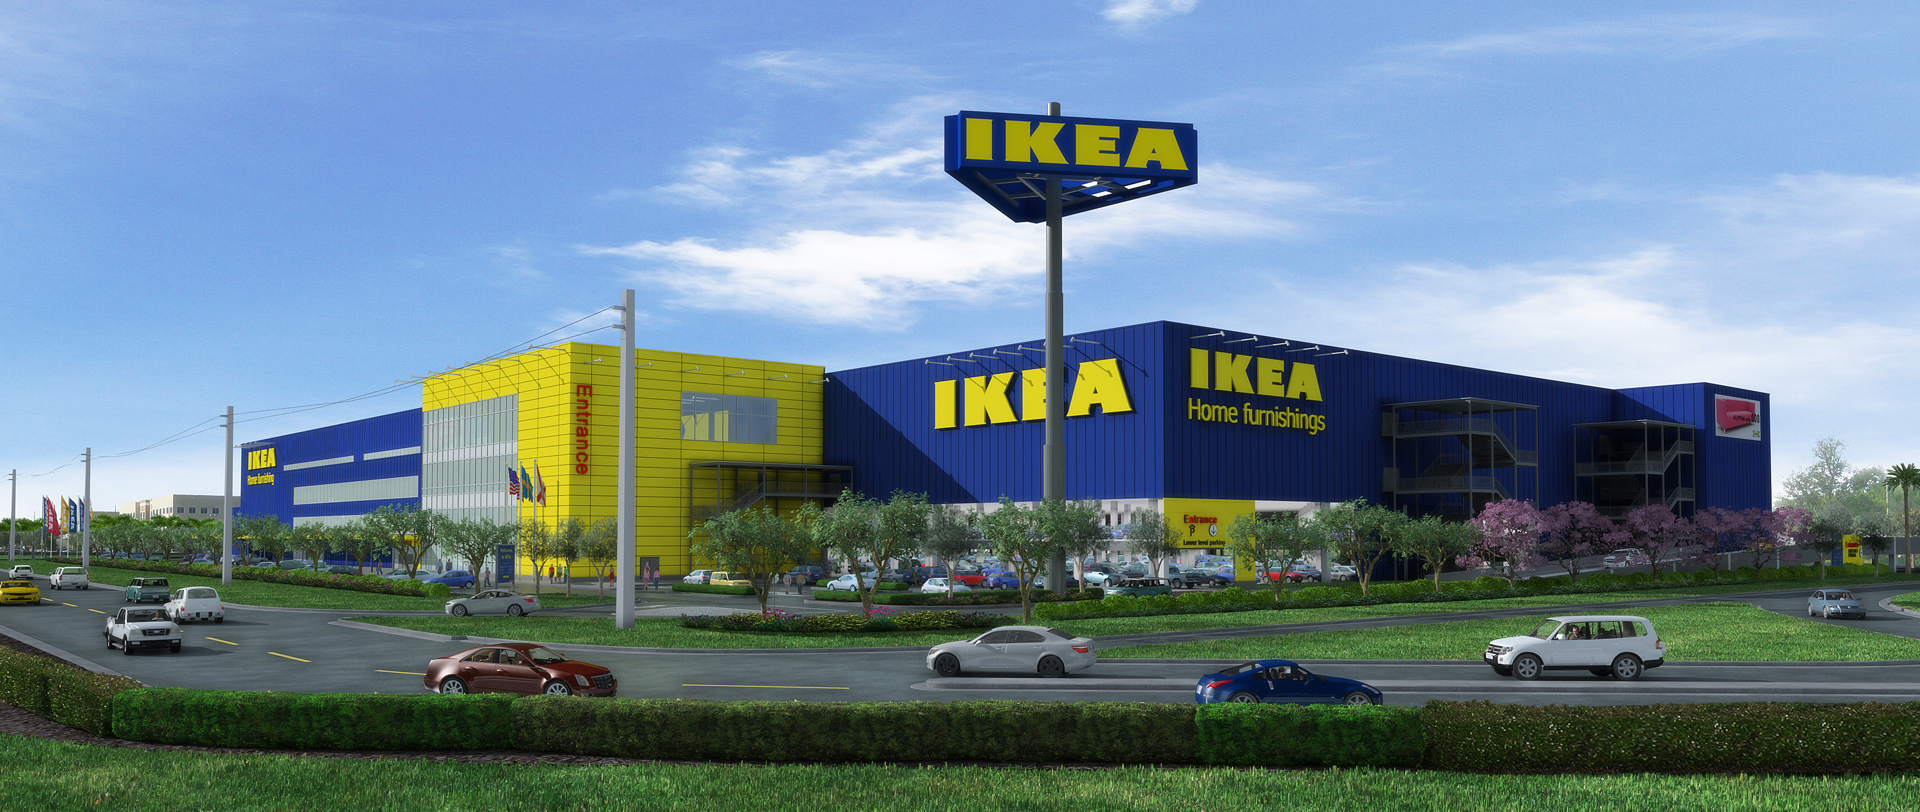 Expanding in florida swedish home furnishings retailer for Ikea store online shopping